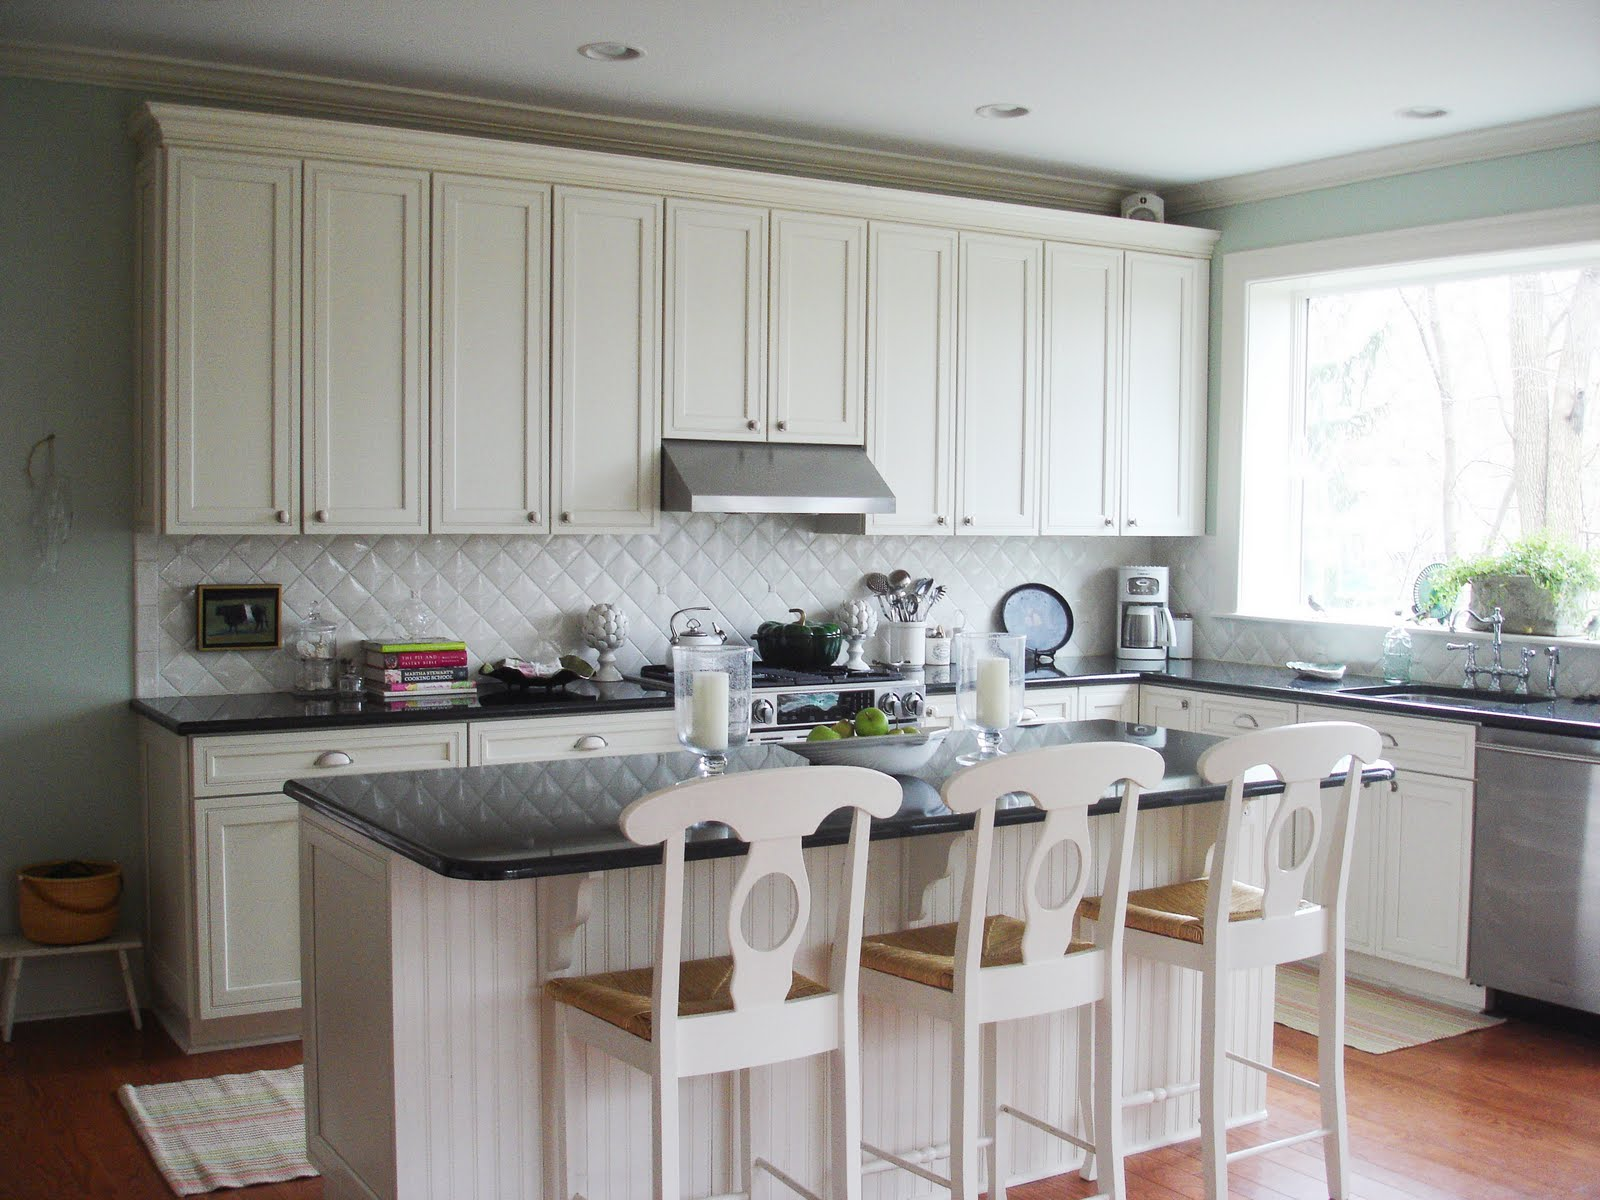 KITCHEN WEEK 4 FAB KITCHENS FROM COCOCOZY READERS